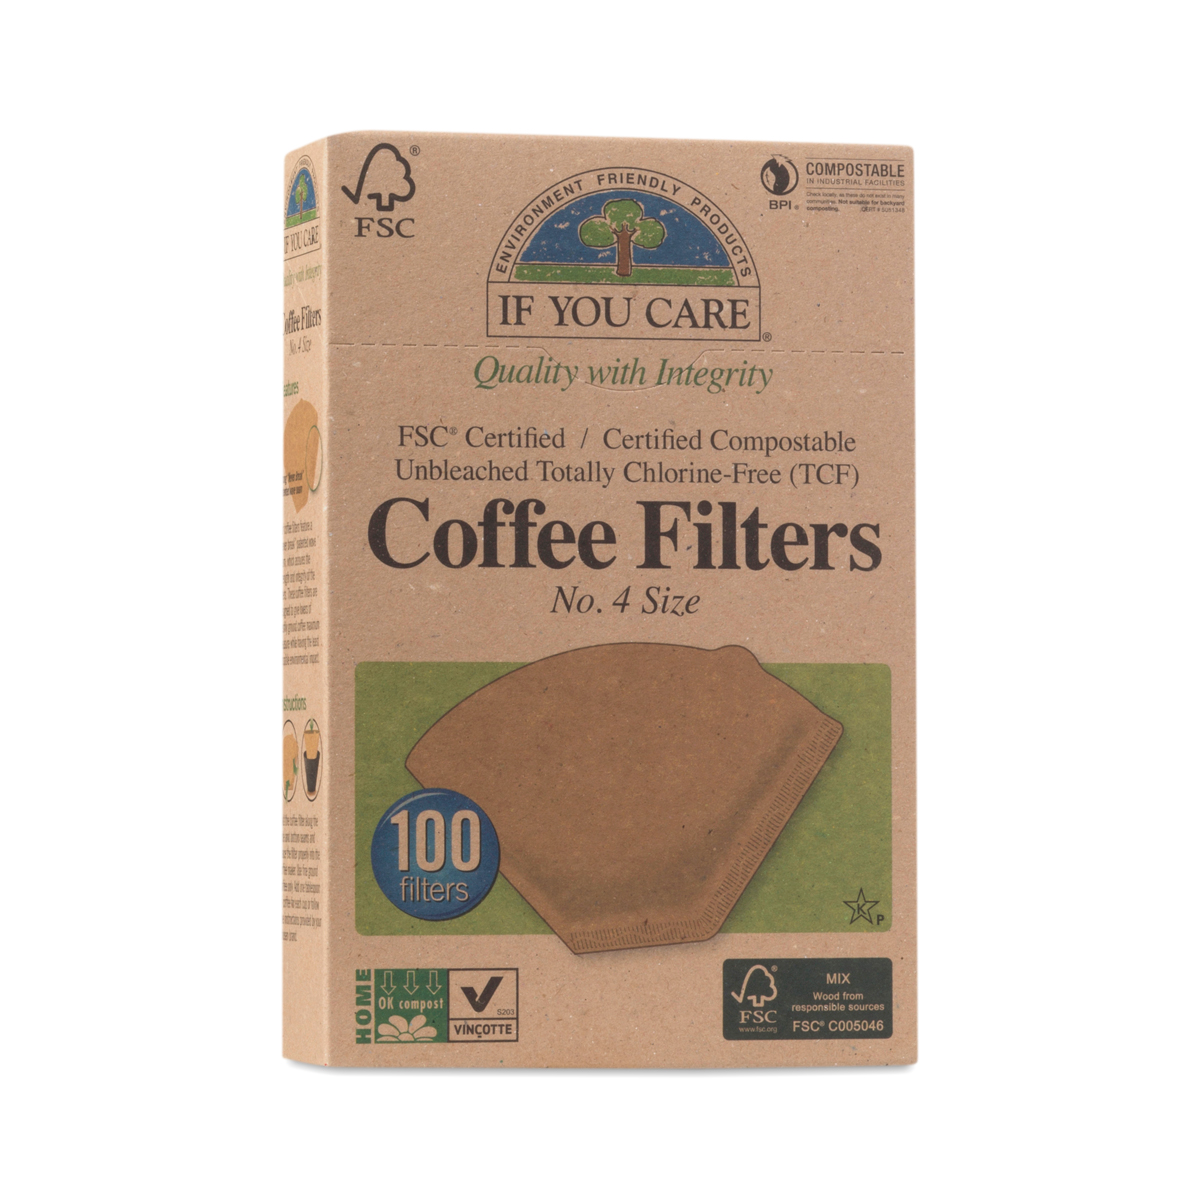 IF YOU CARE Compostable Certified Coffee Filters, #4 Cone